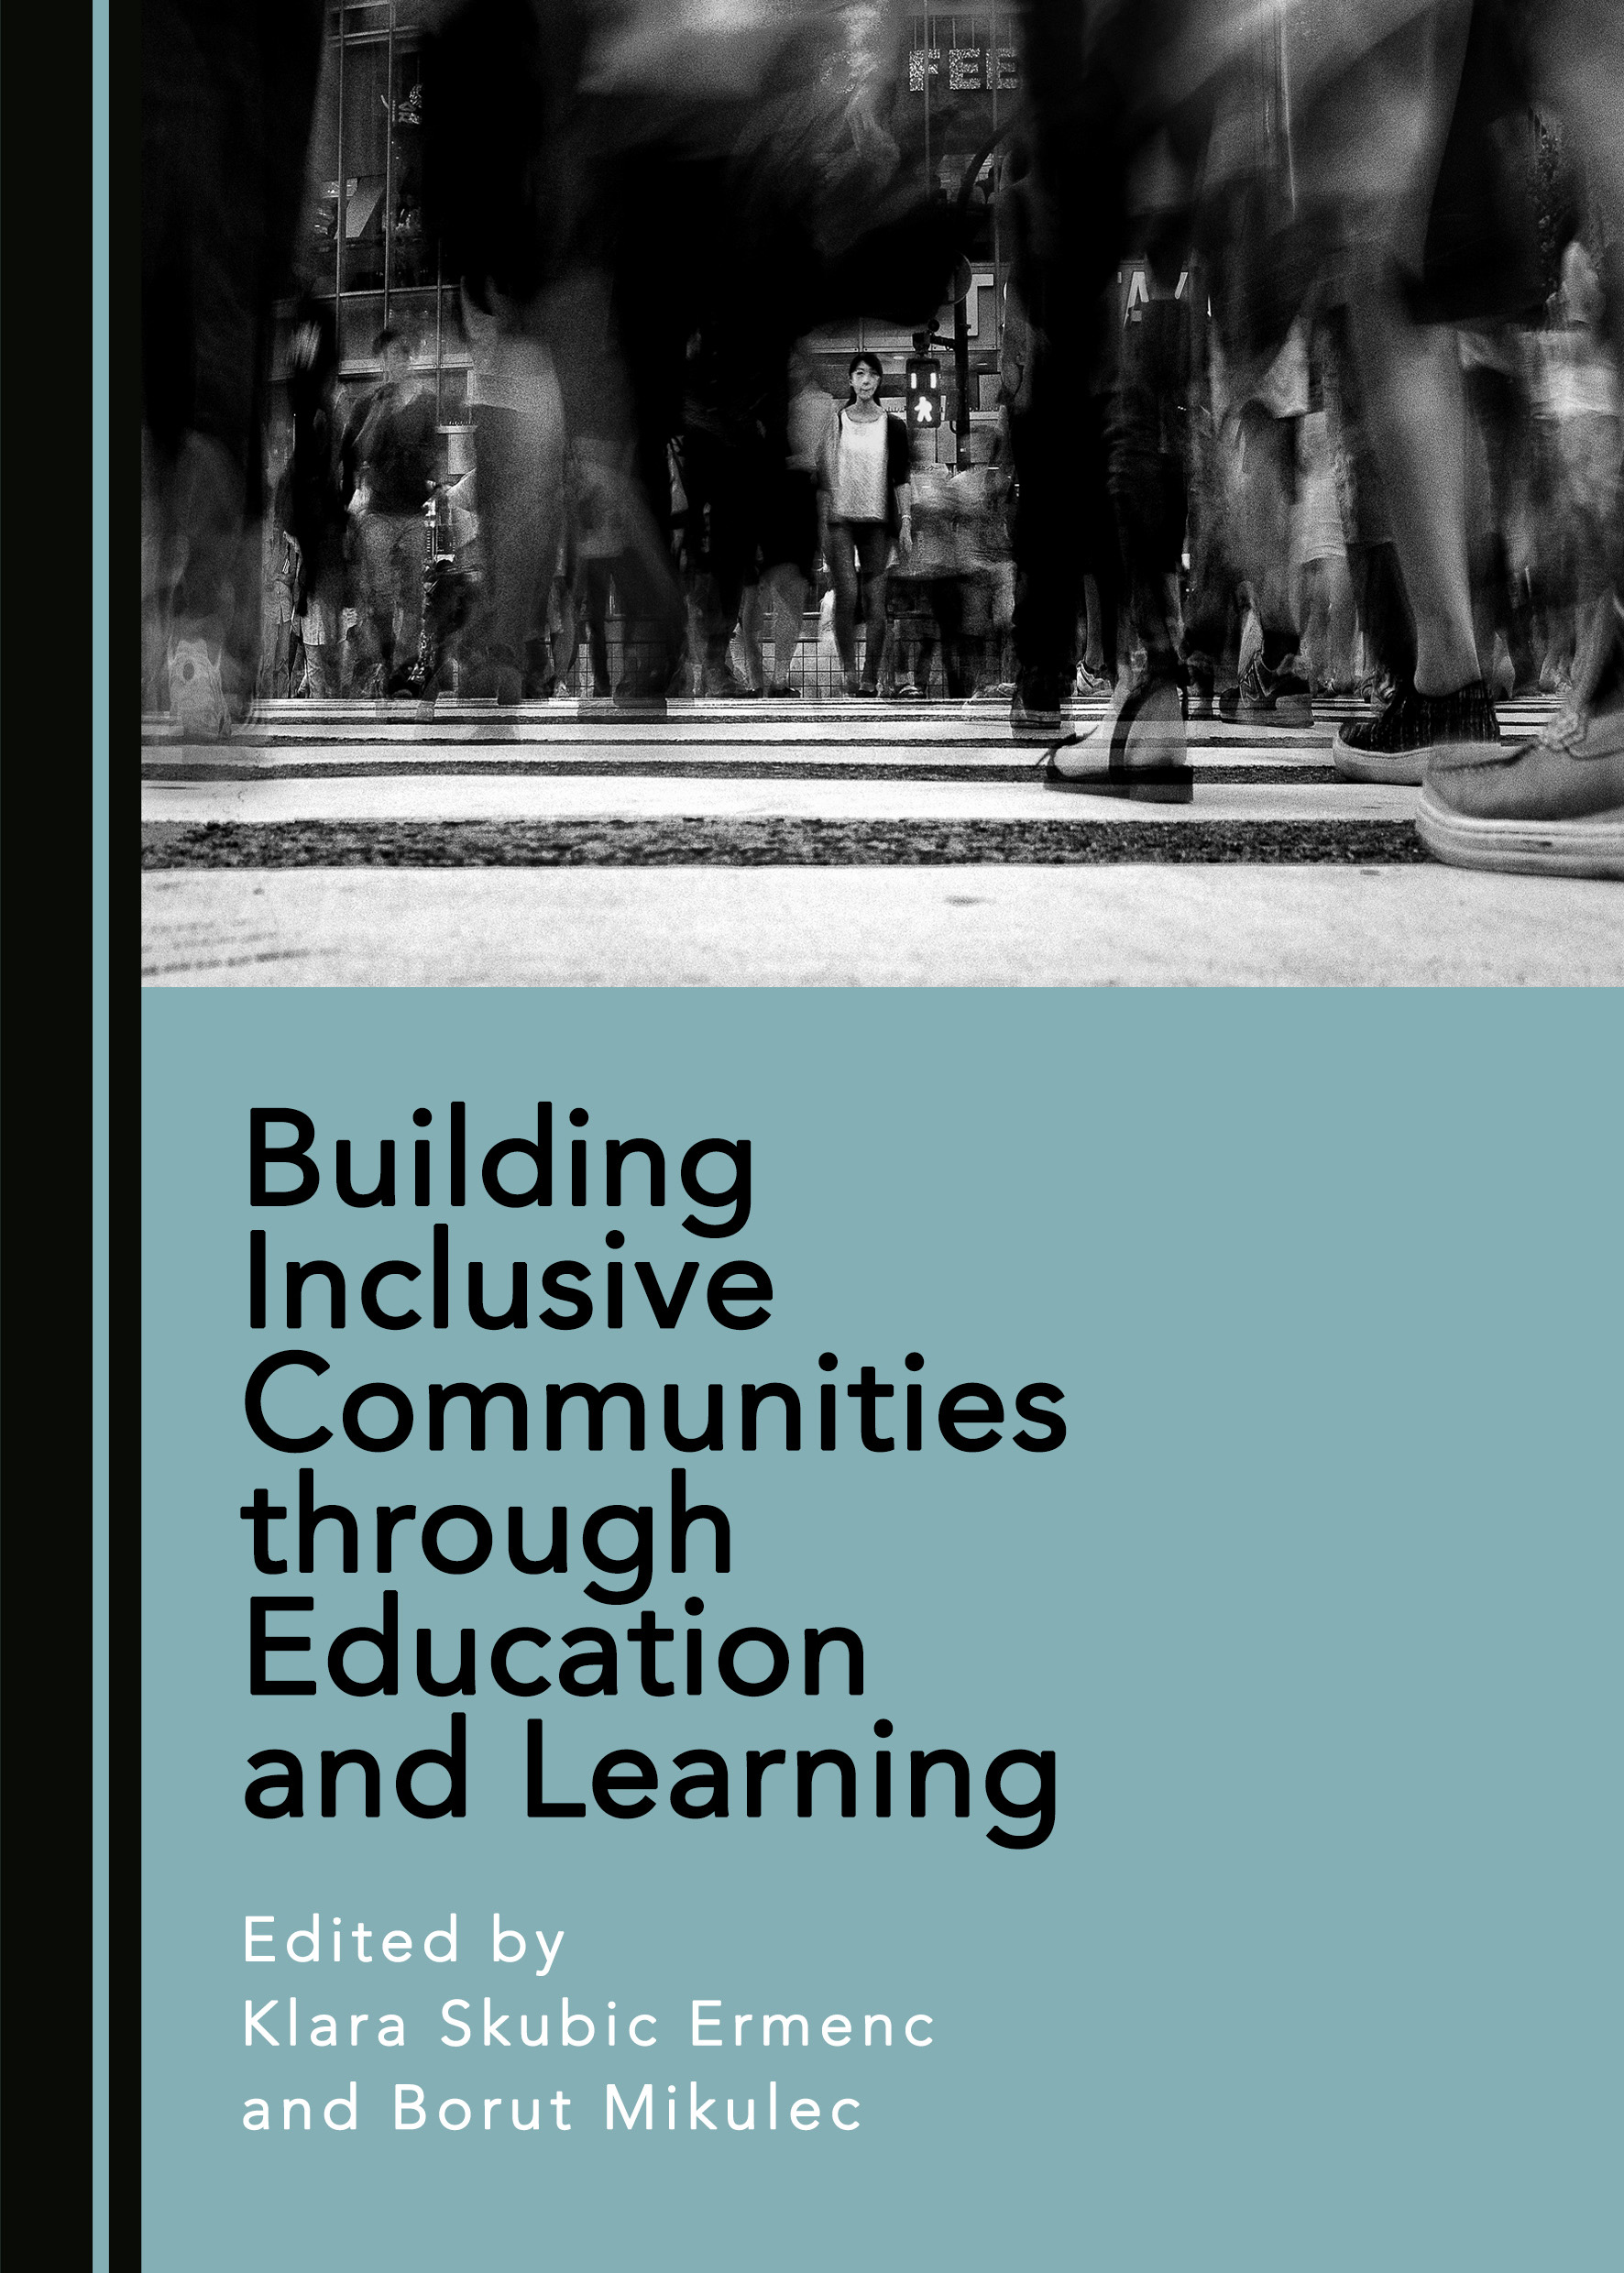 Building Inclusive Communities through Education and Learning